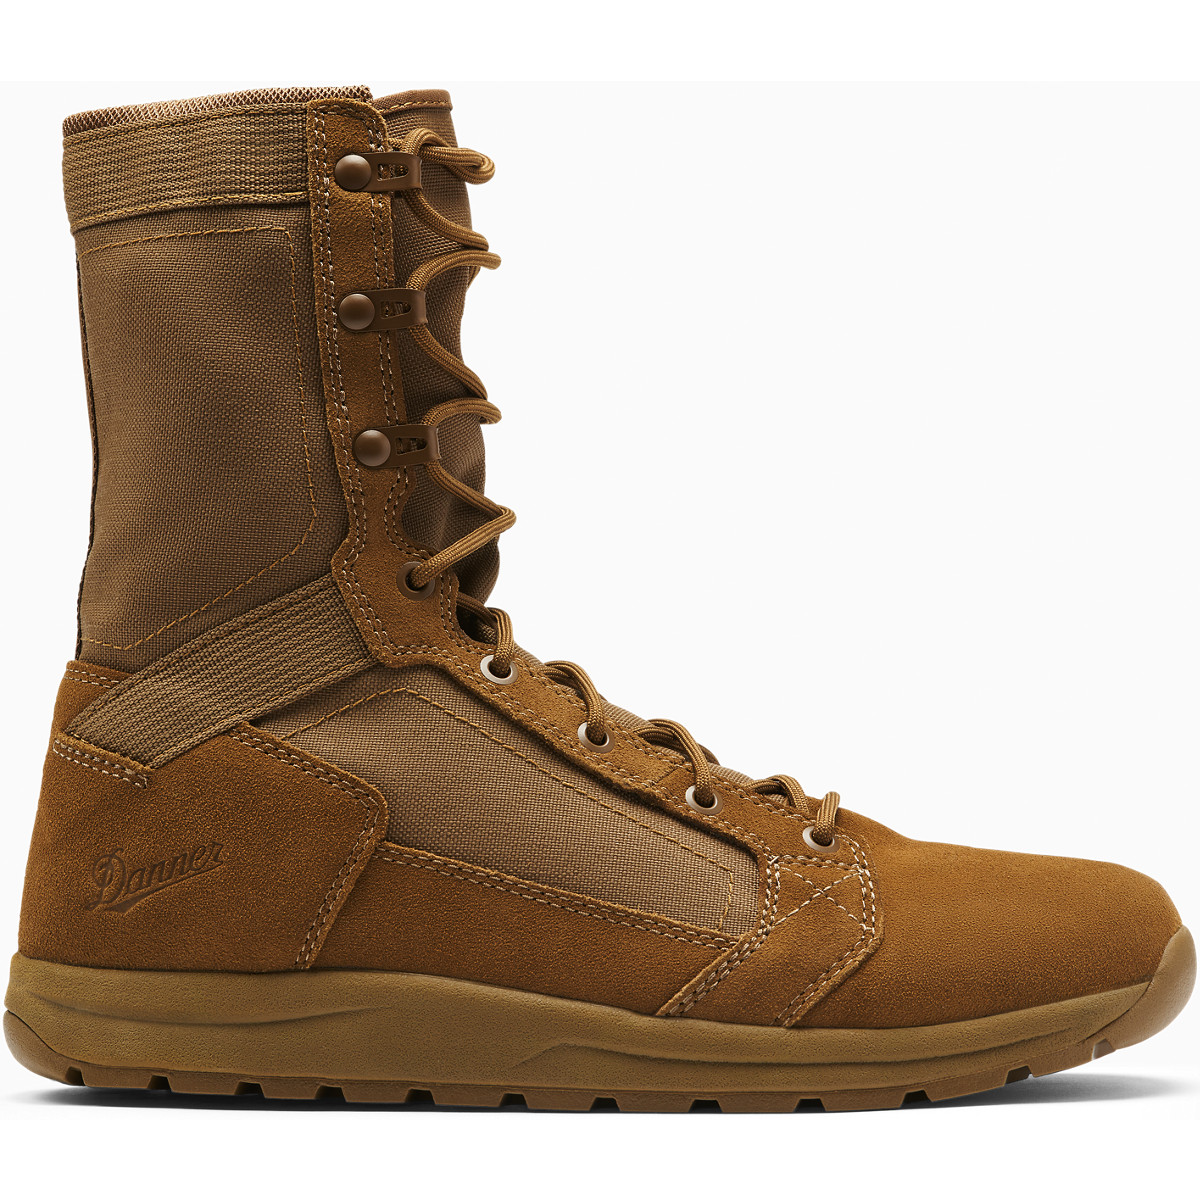 Danner Boots Philippines